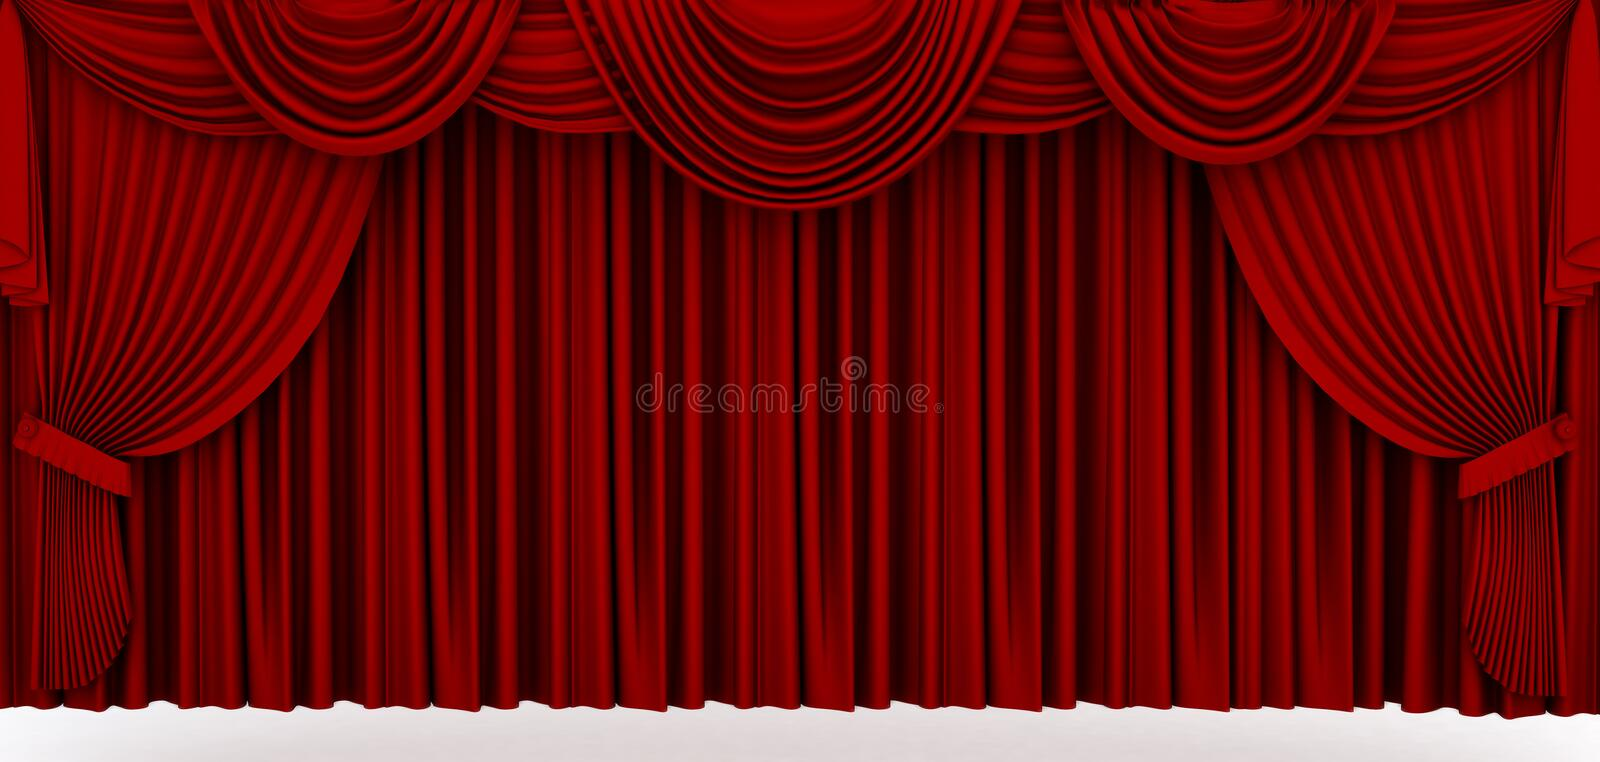 Red stage drapery vector illustration